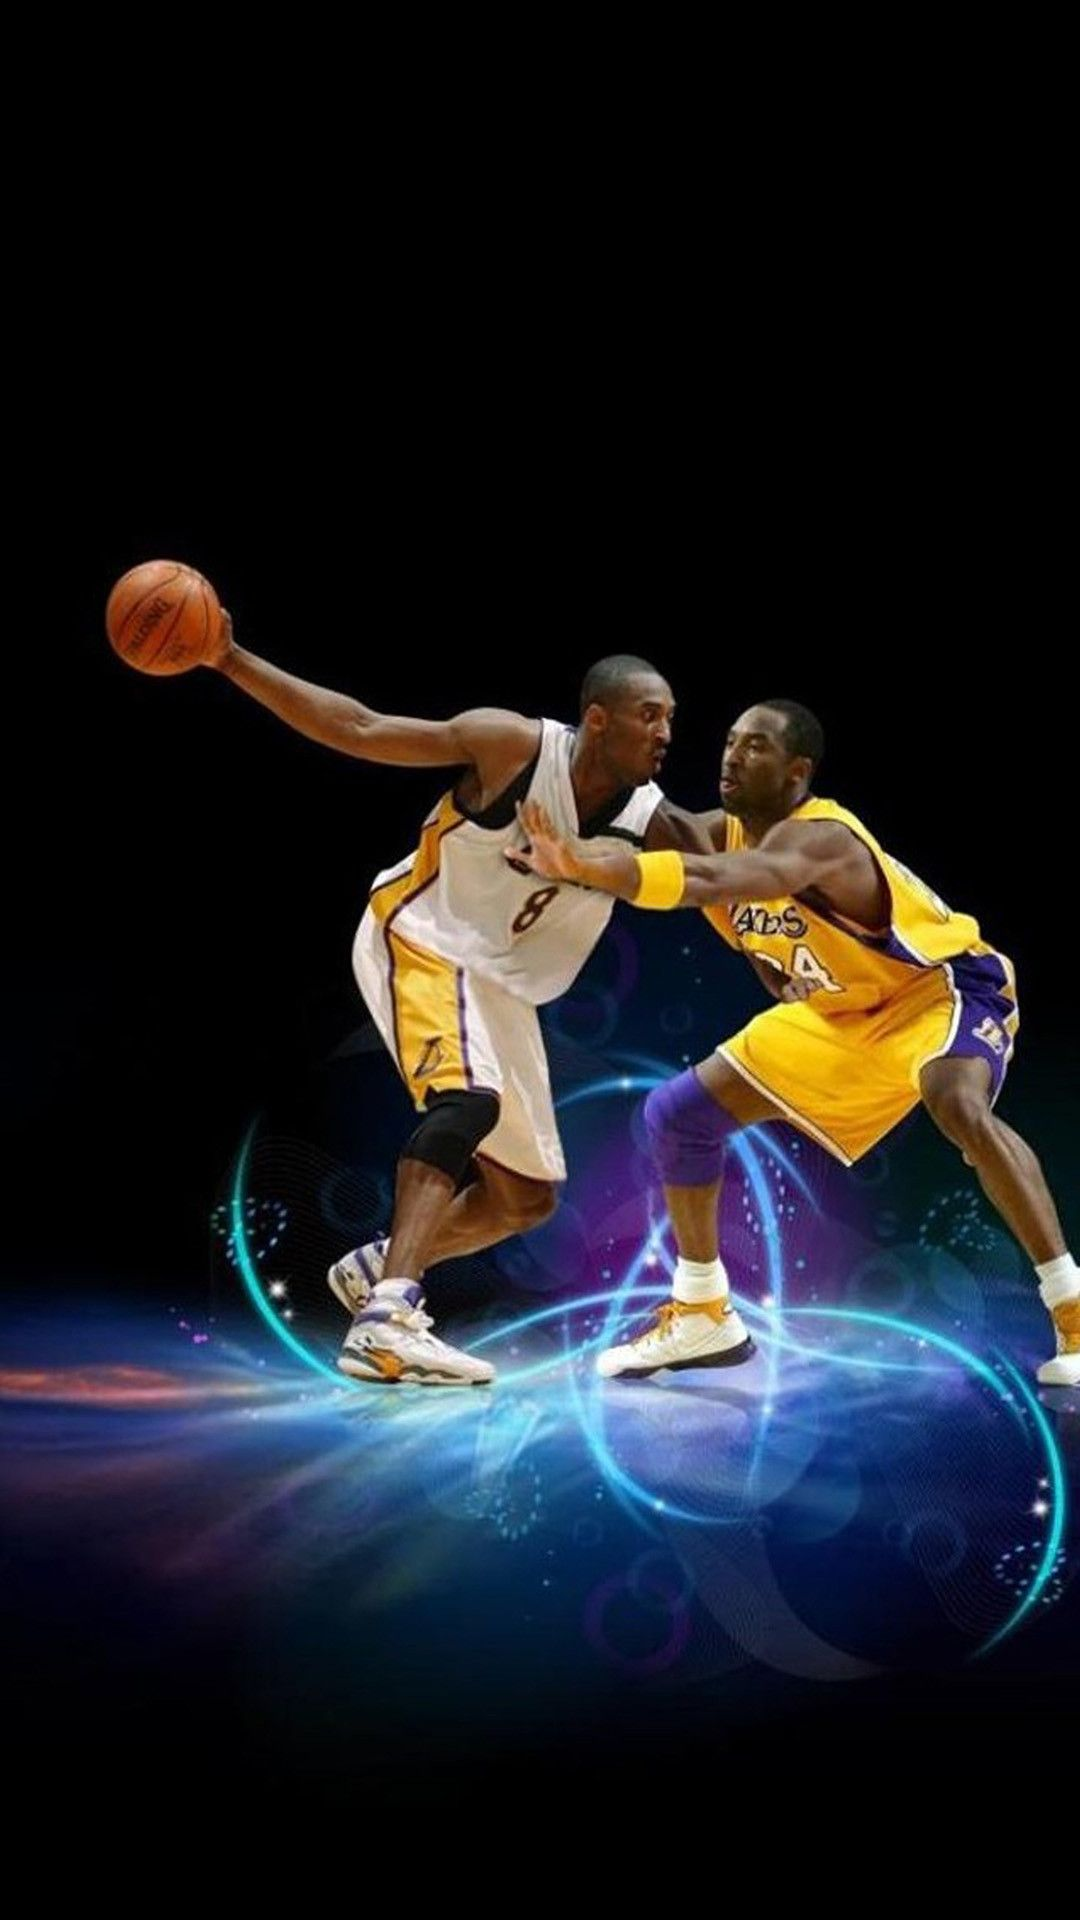 Cool Basketball Android Background in 2020 Kobe bryant